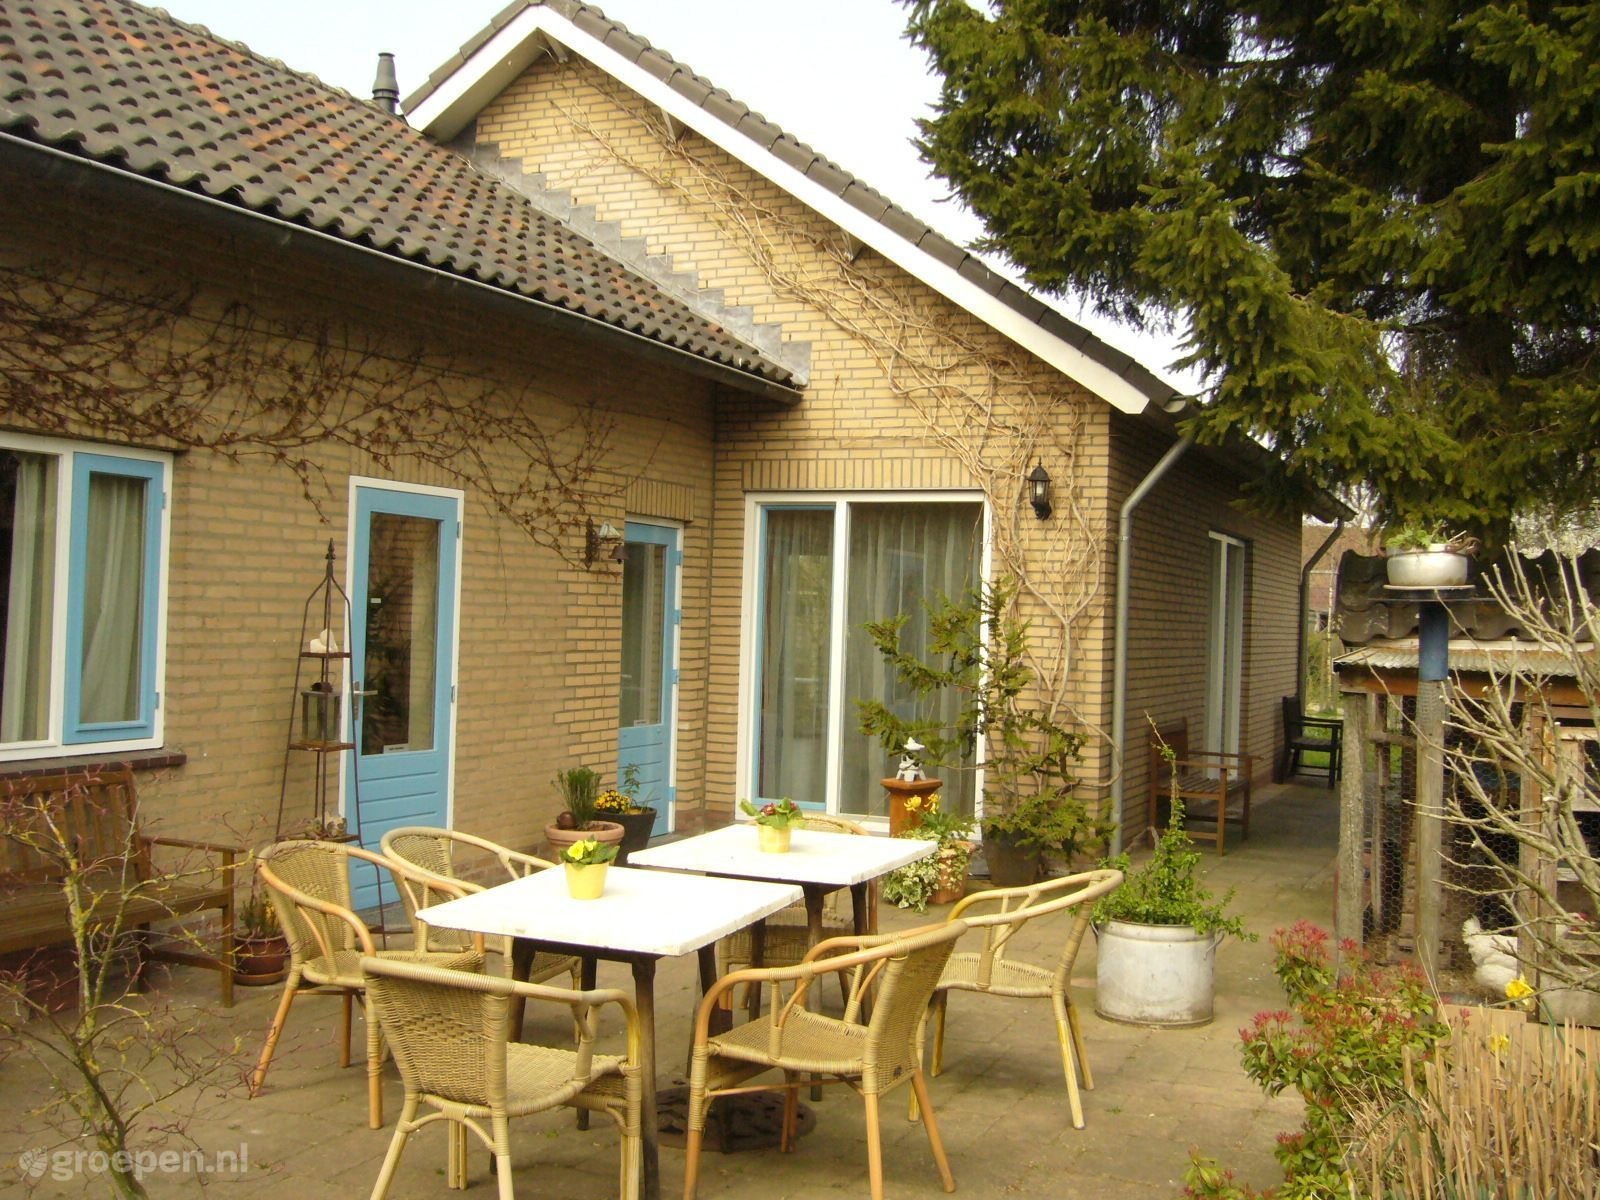 Group accommodation St. geertruid